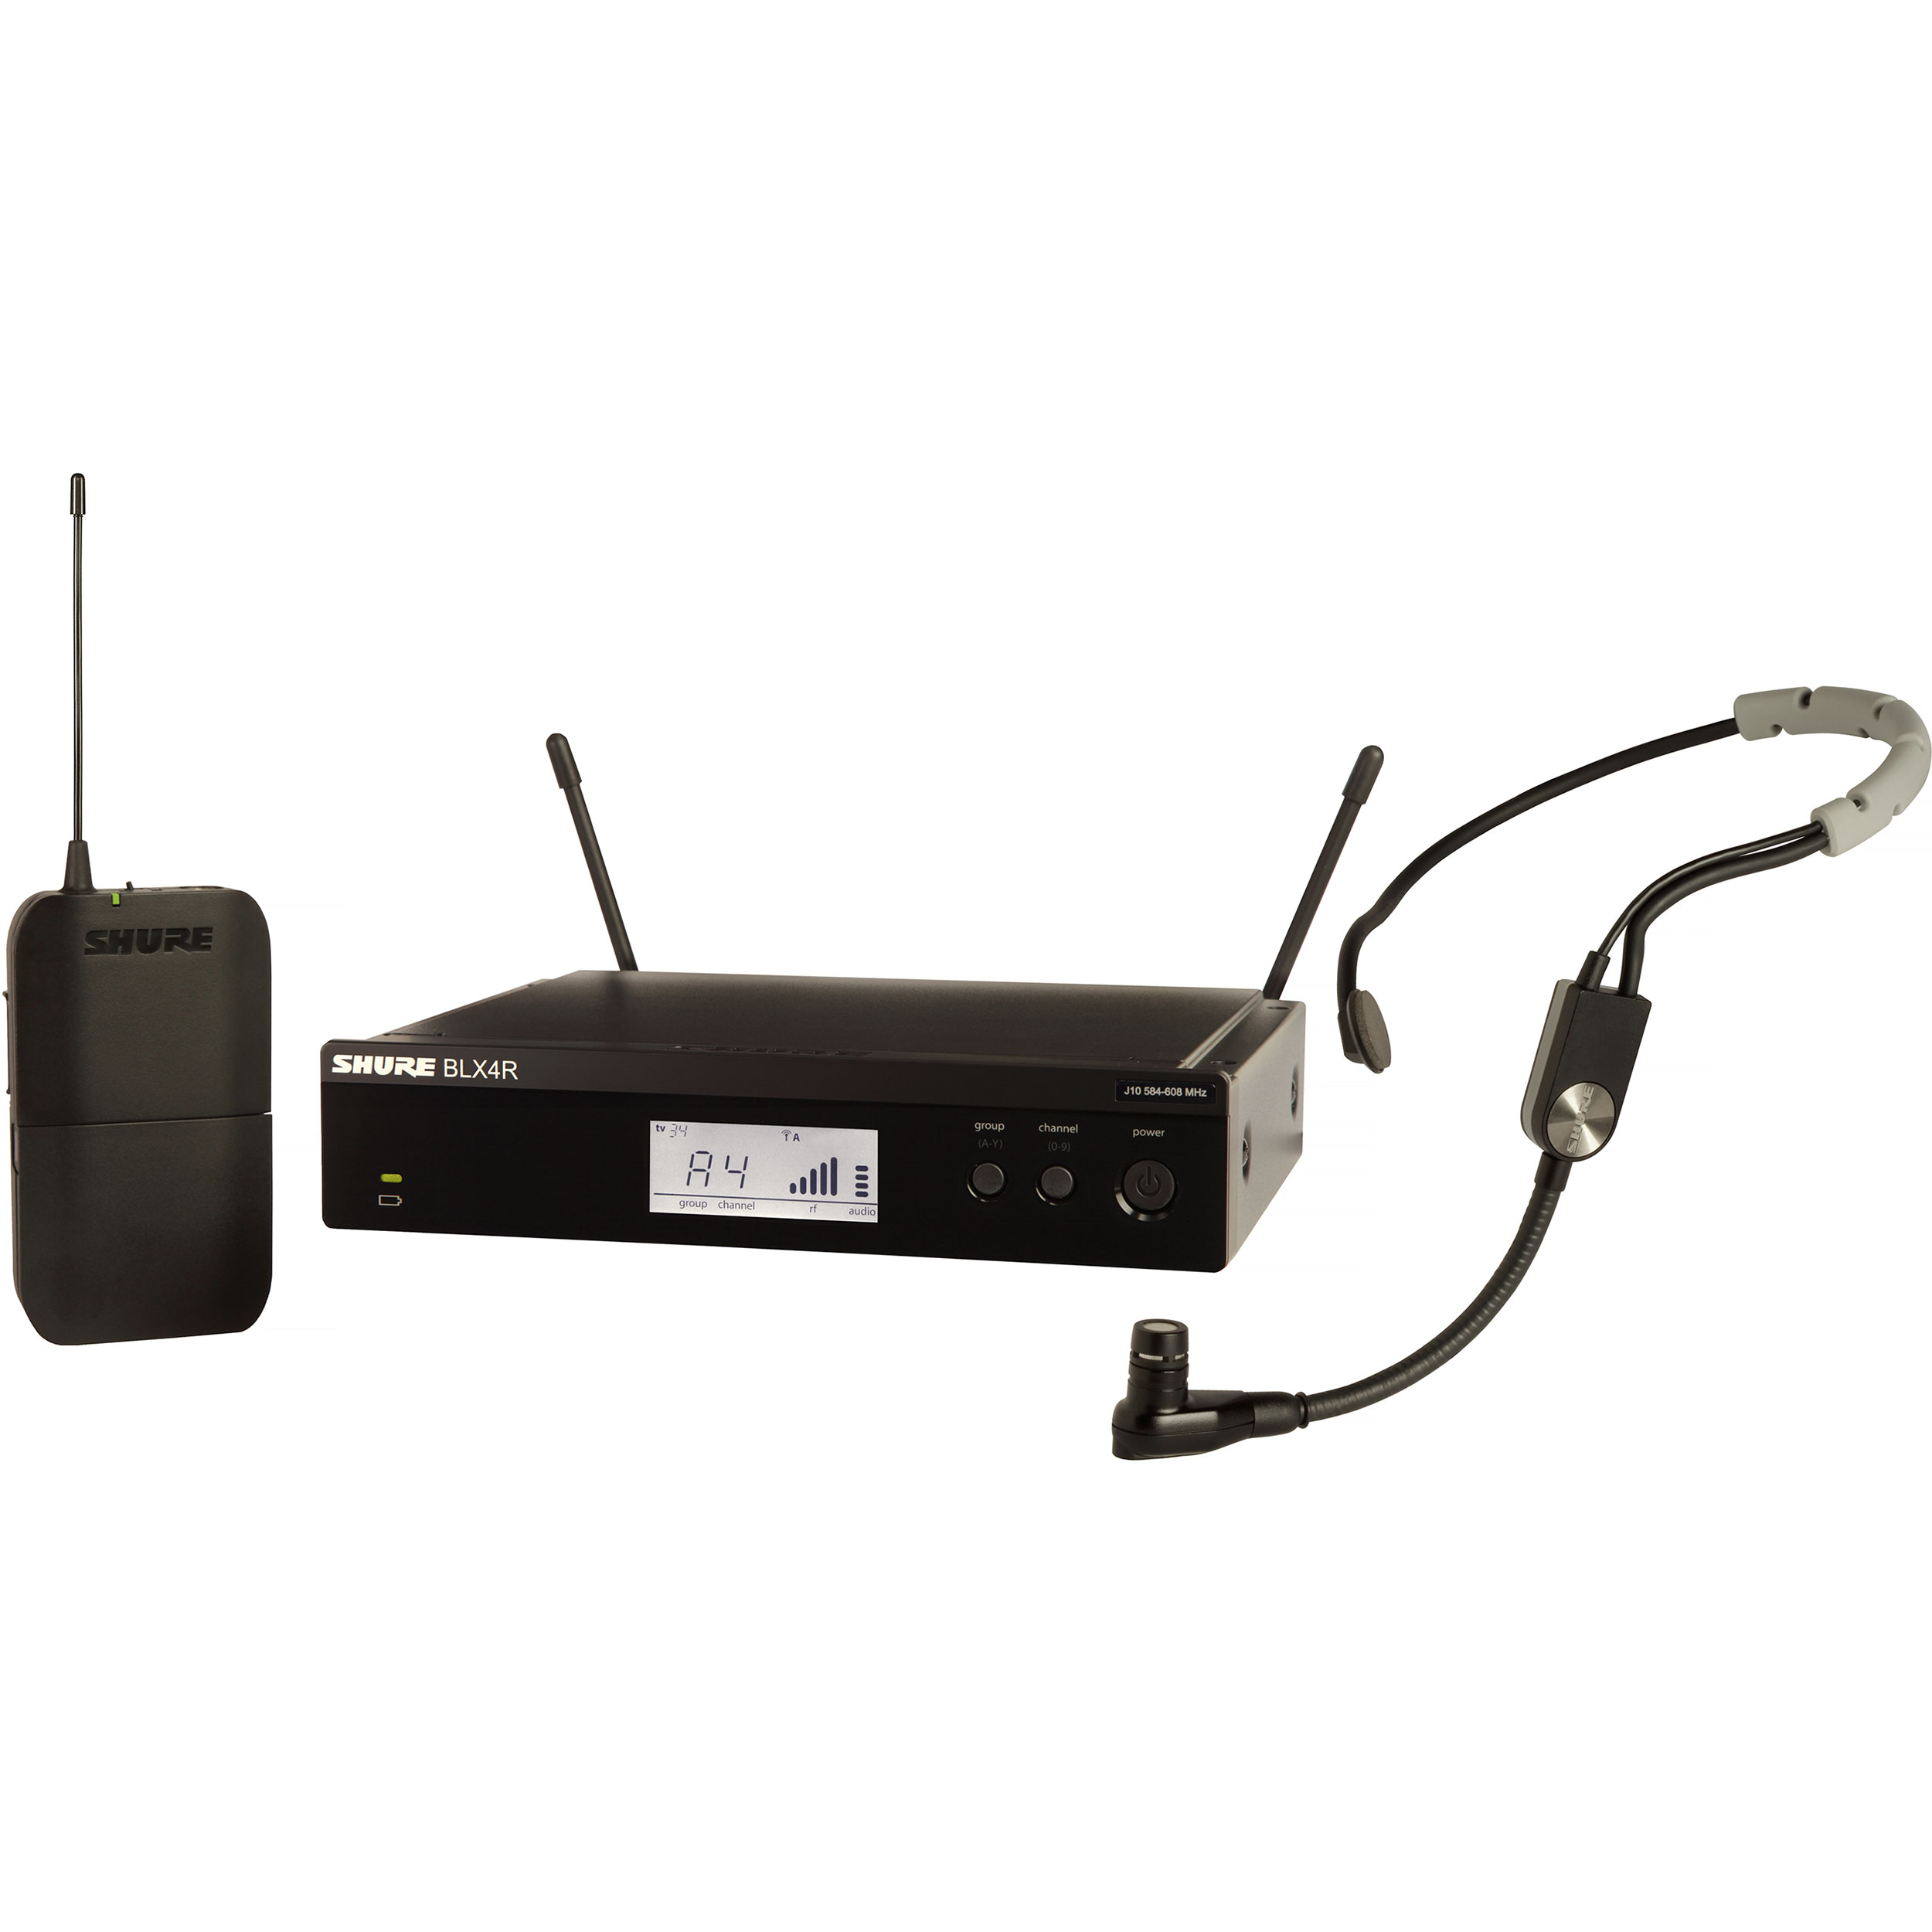 Shure BLX Wireless System with SM35 Headset Microphone, BLX1 Bodypack Transmitter, and BLX4R Receiver